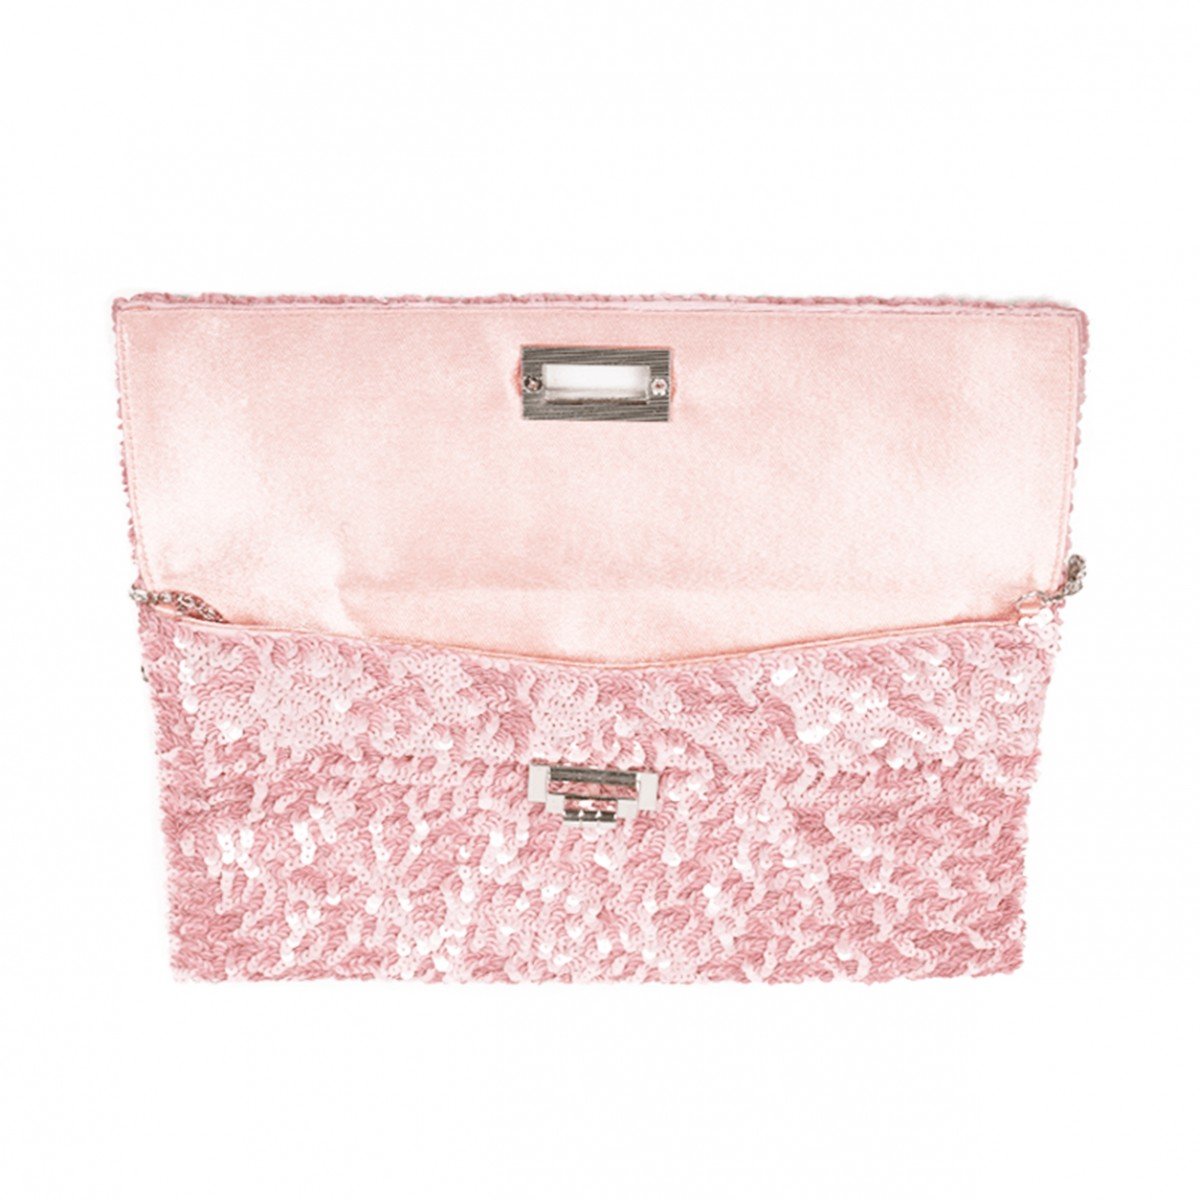 Sequin Clutch Bag - Pink